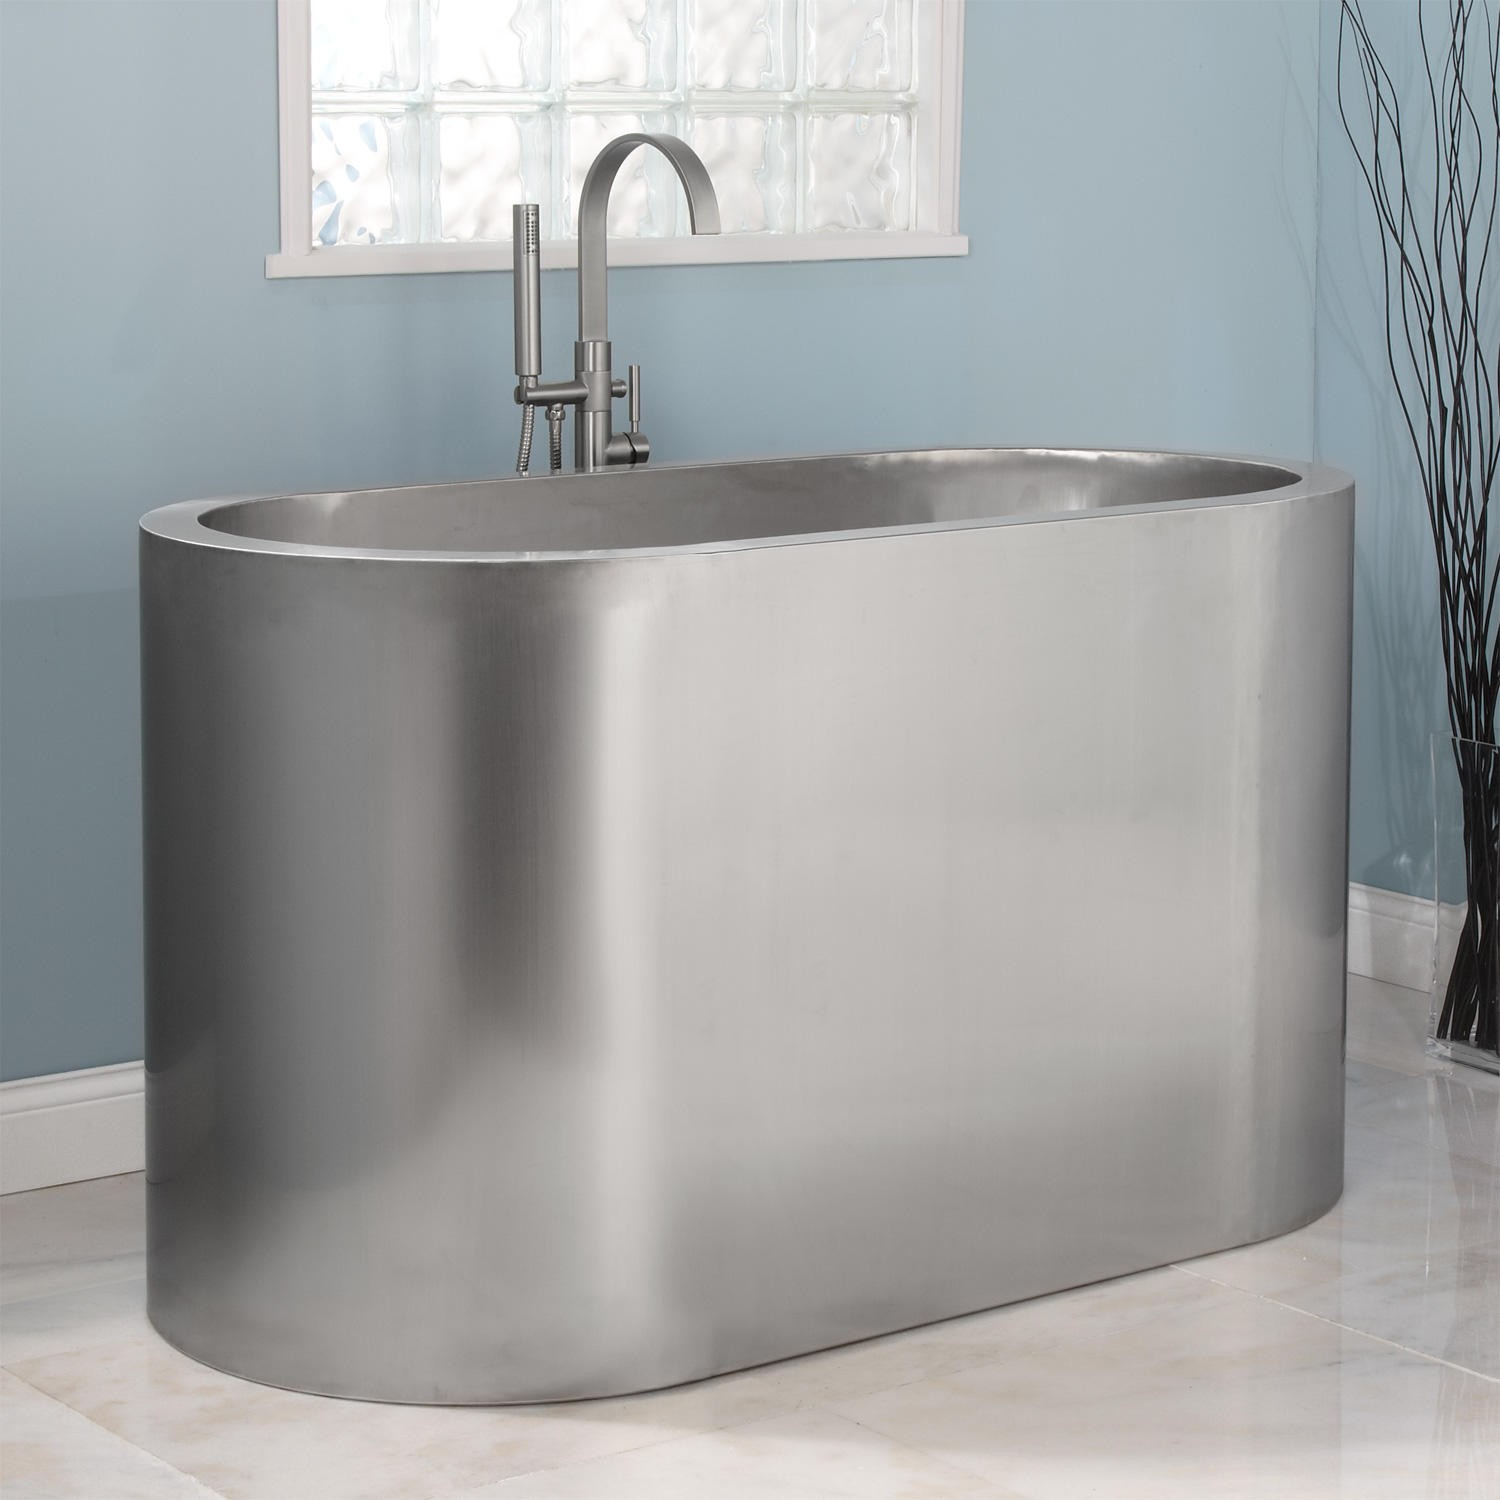 stainless steel japanese soaking tub - Ofuro Soaking Tubs: The Vibe ...